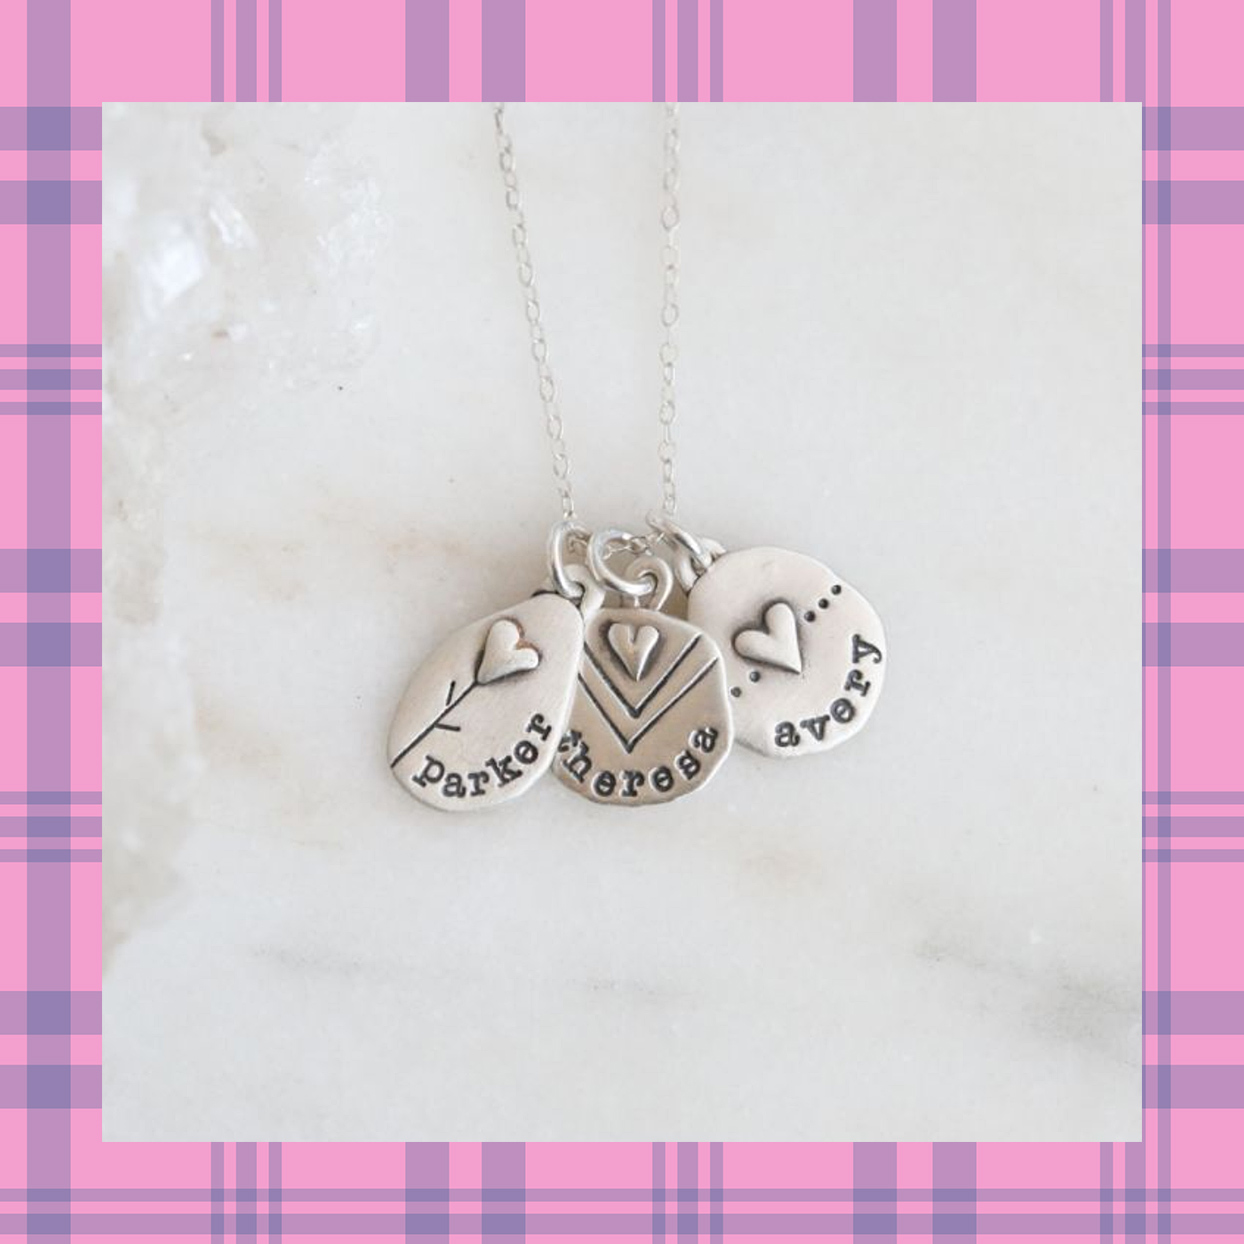 jumble of love necklace